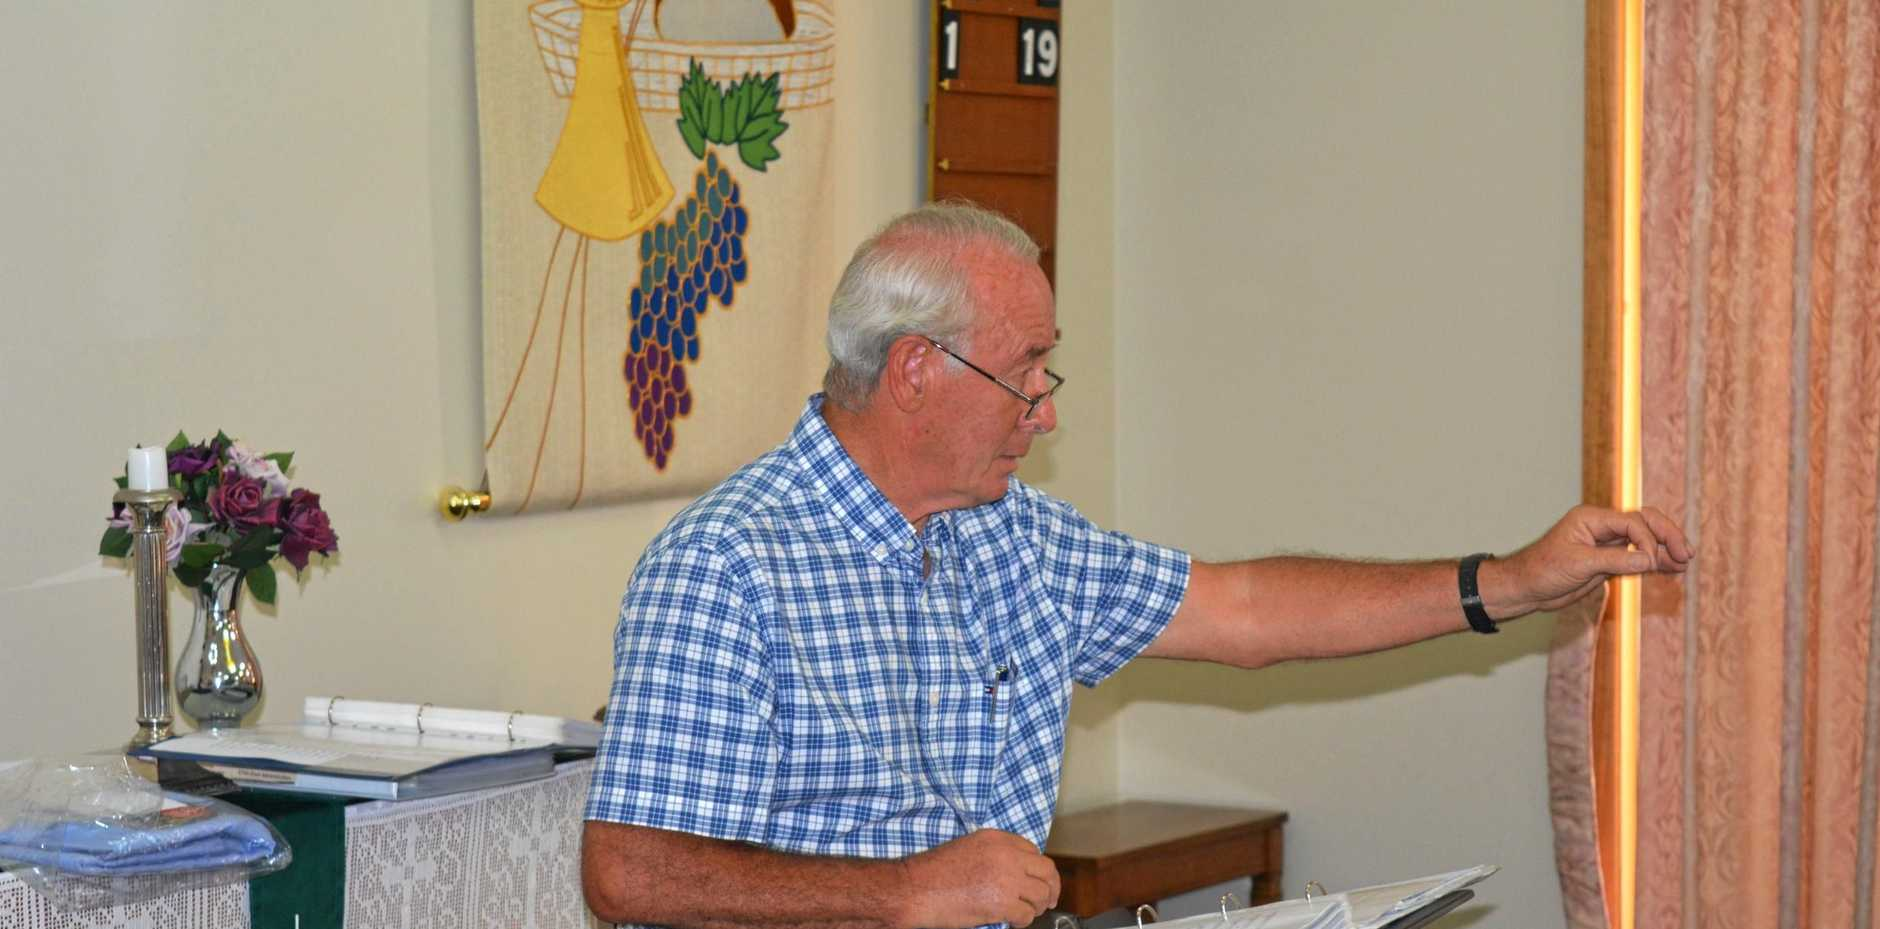 LEADING MAN: Choirmaster of the Lockyer Valley's Something to Sing About Choir Gary Young leads practice at the Tabeel Church.